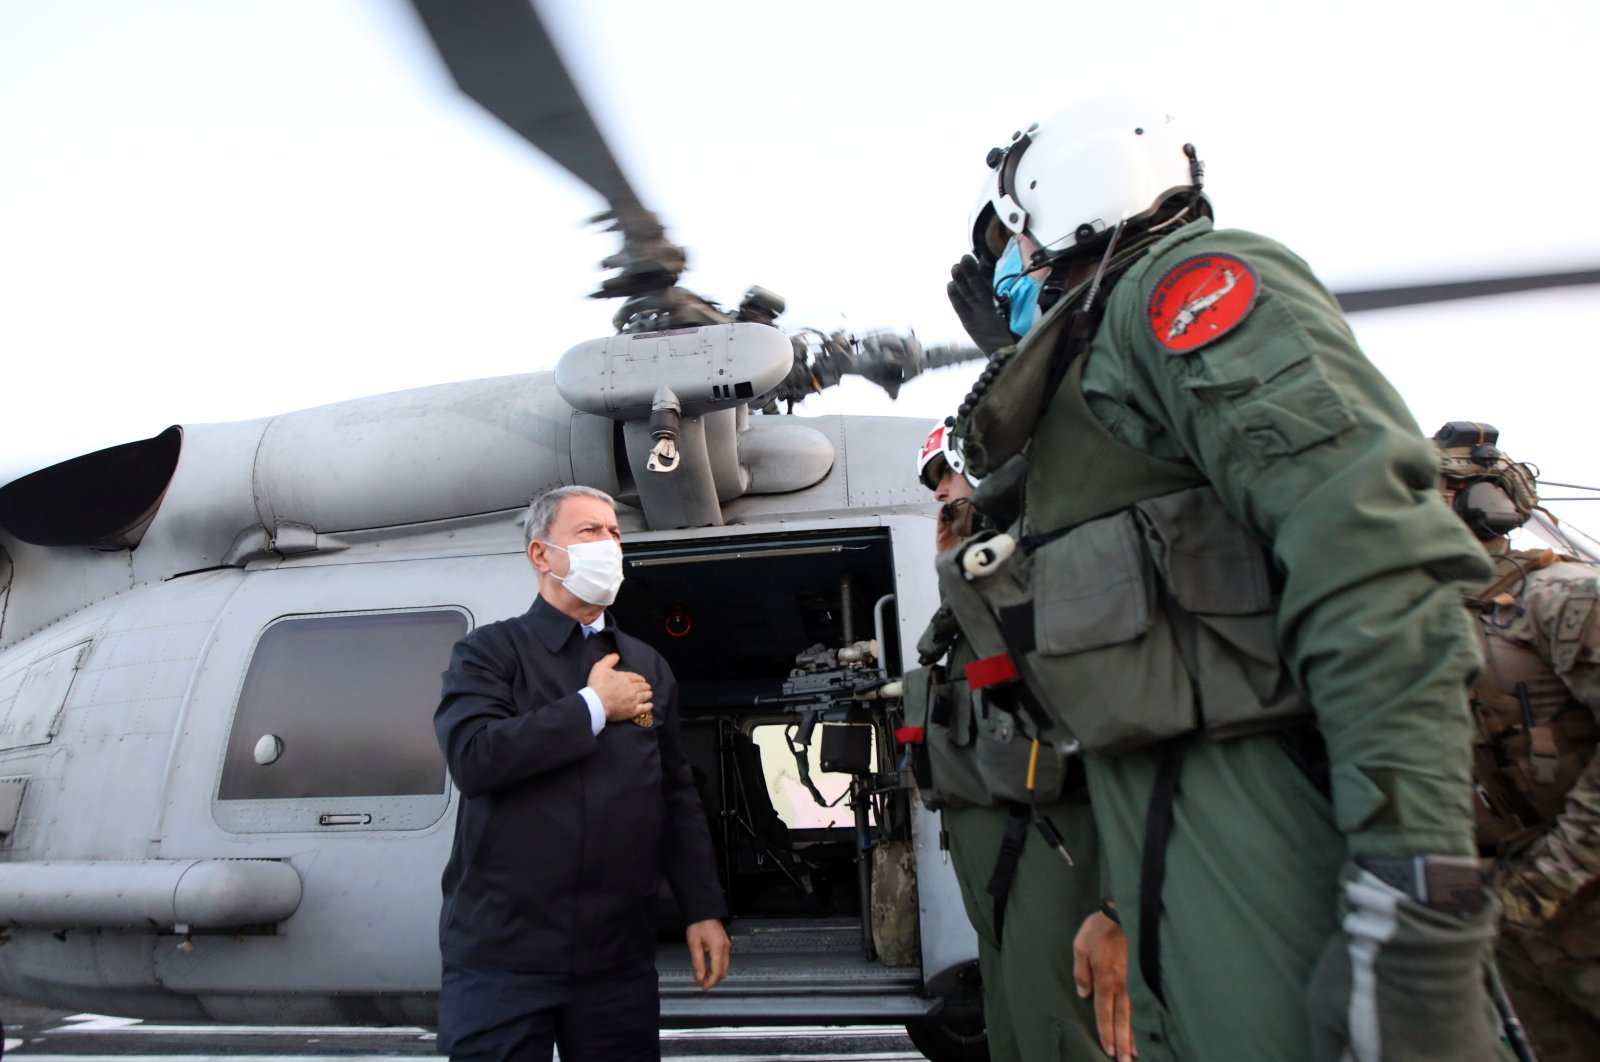 Defense Minister Hulusi Akar visits the Turkish Maritime Task Group ship on duty off the coast of Libya in the Central Mediterranean, July 4, 2020. (AA Photo)